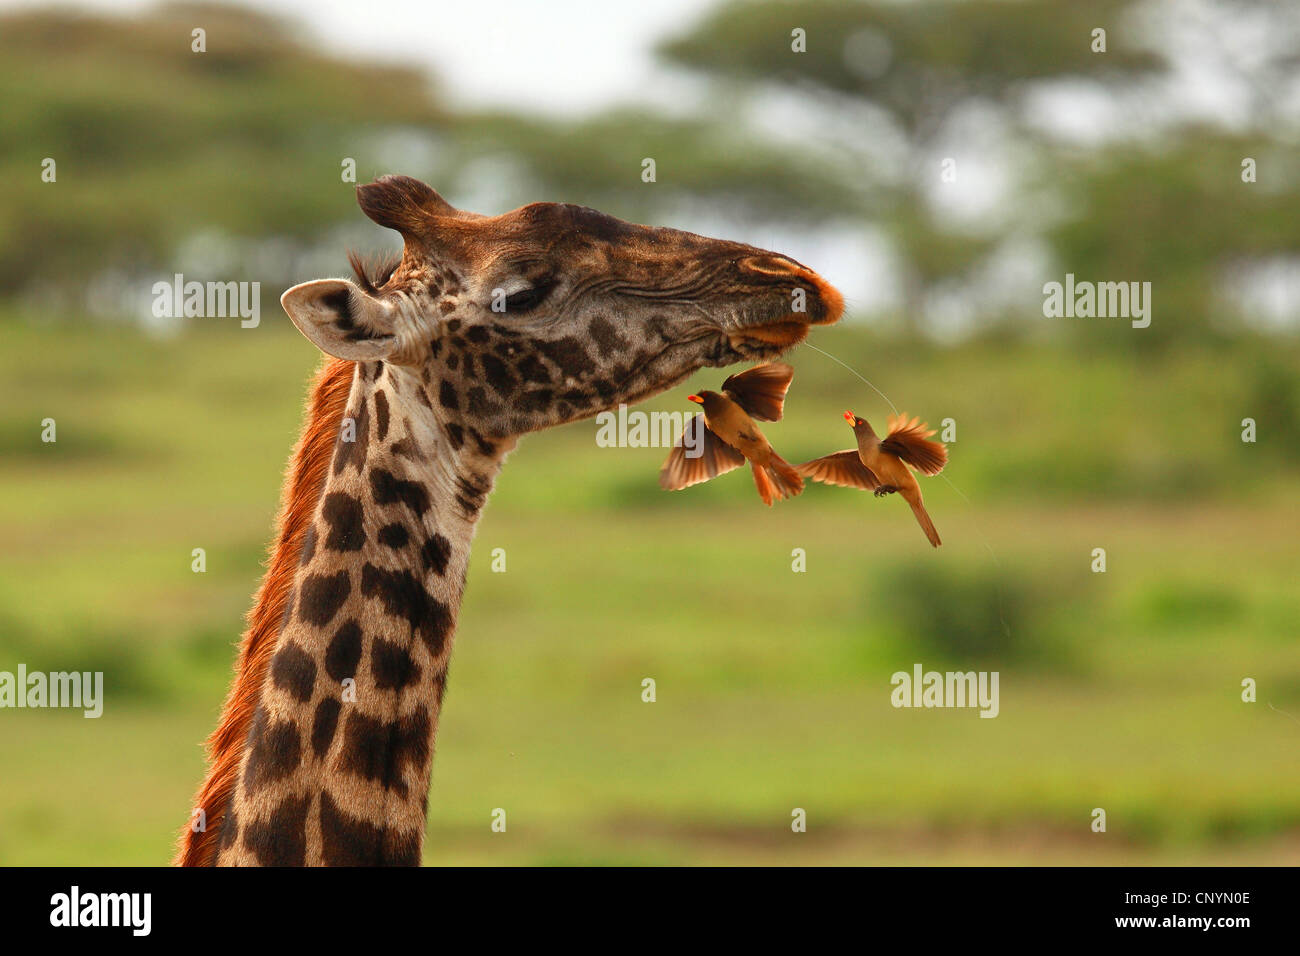 giraffe (Giraffa camelopardalis), red-billed oxpecker eating other insects, Tanzania, Ngorongoro Conservation Area - Stock Image